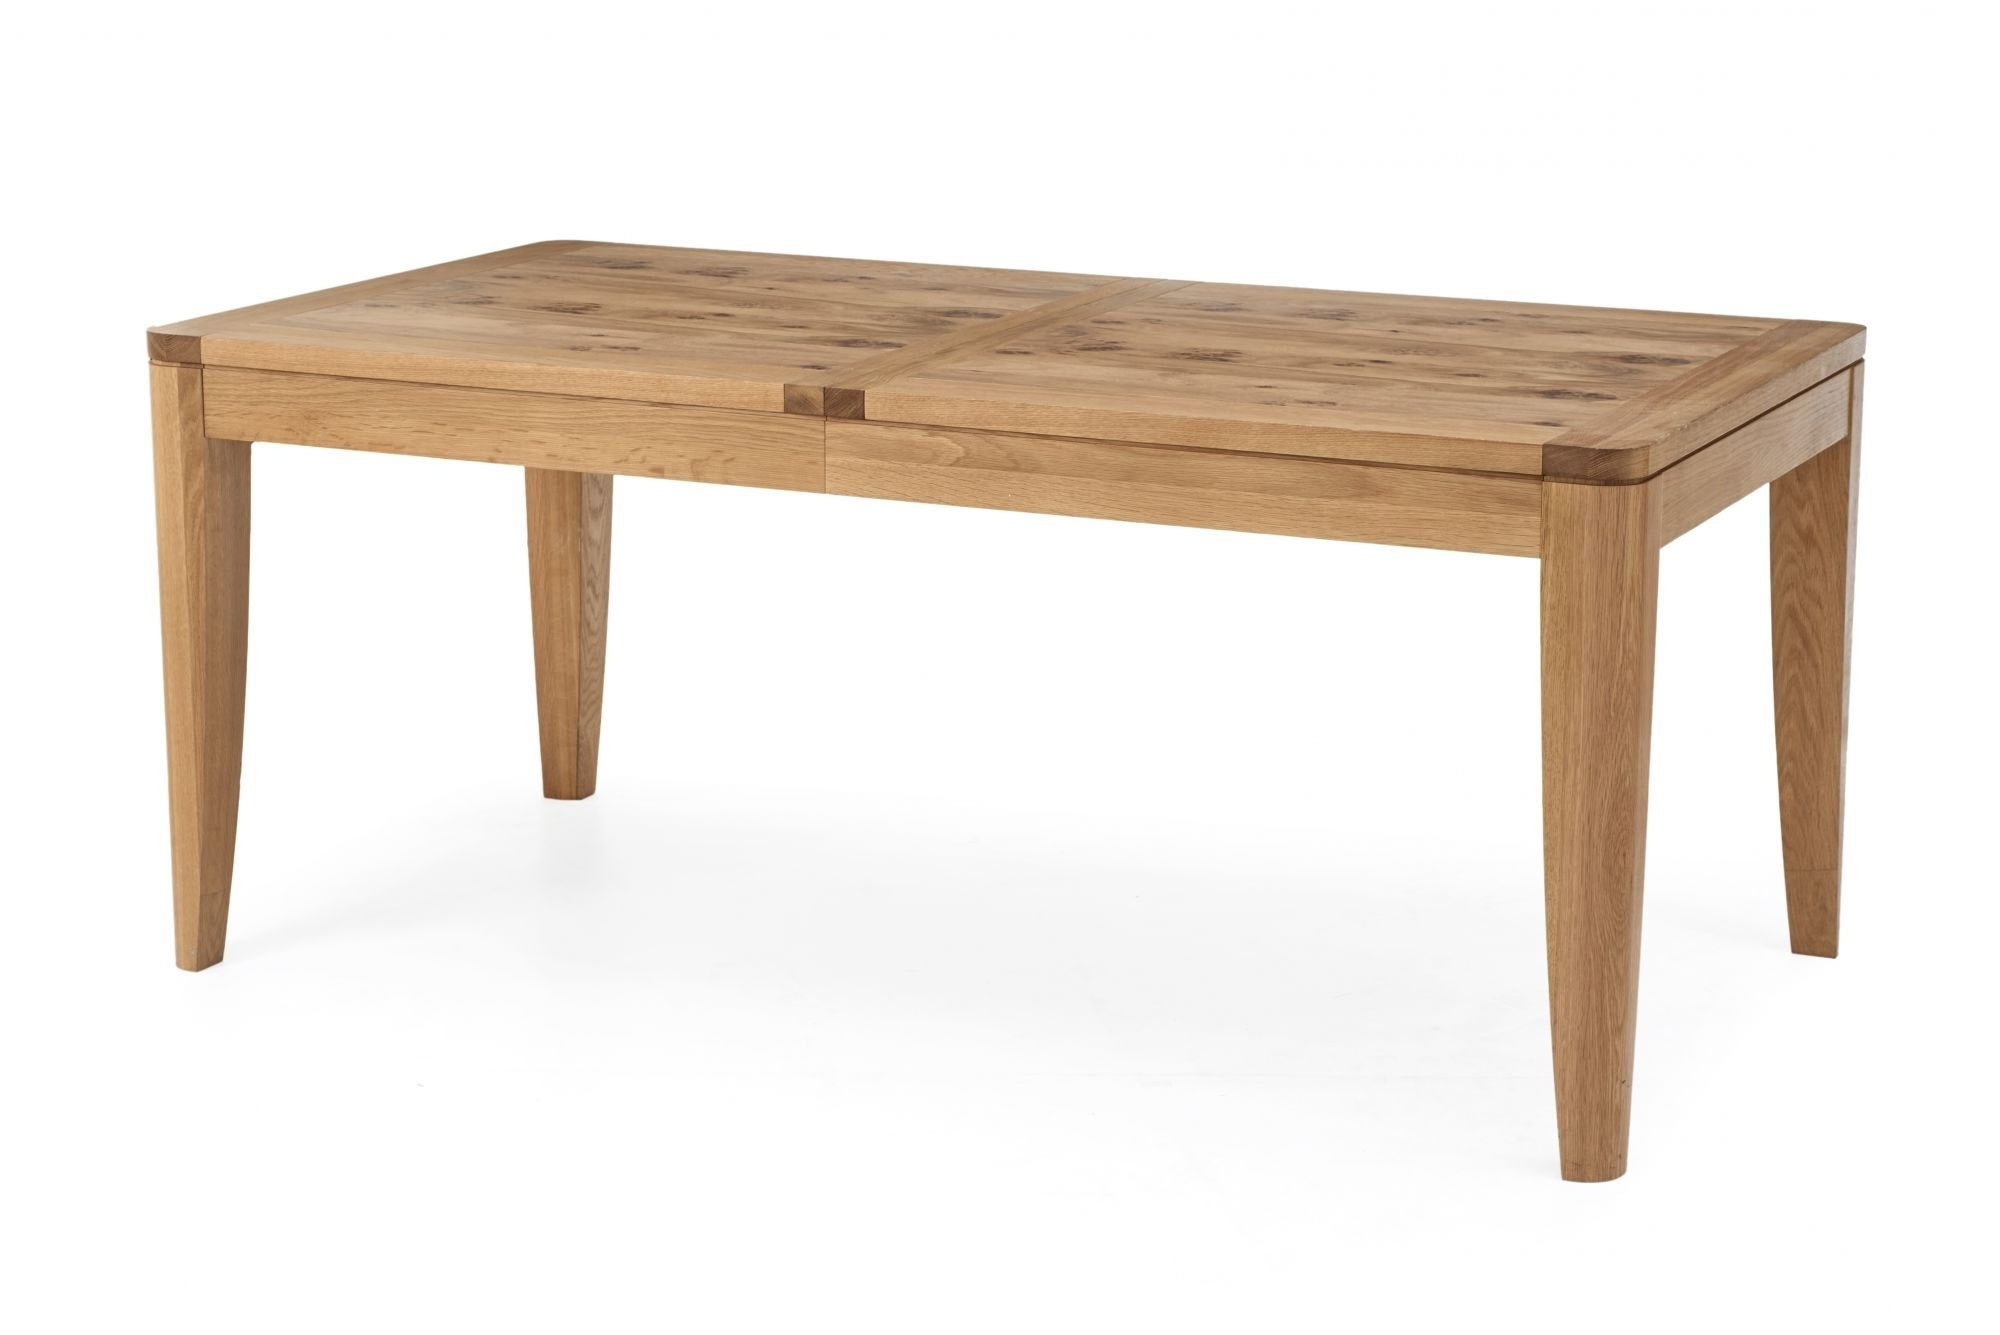 8 Seater Oak Dining Tables In Widely Used Pippy Oak Large 6 8 Seater Extending Dining Table (View 11 of 25)